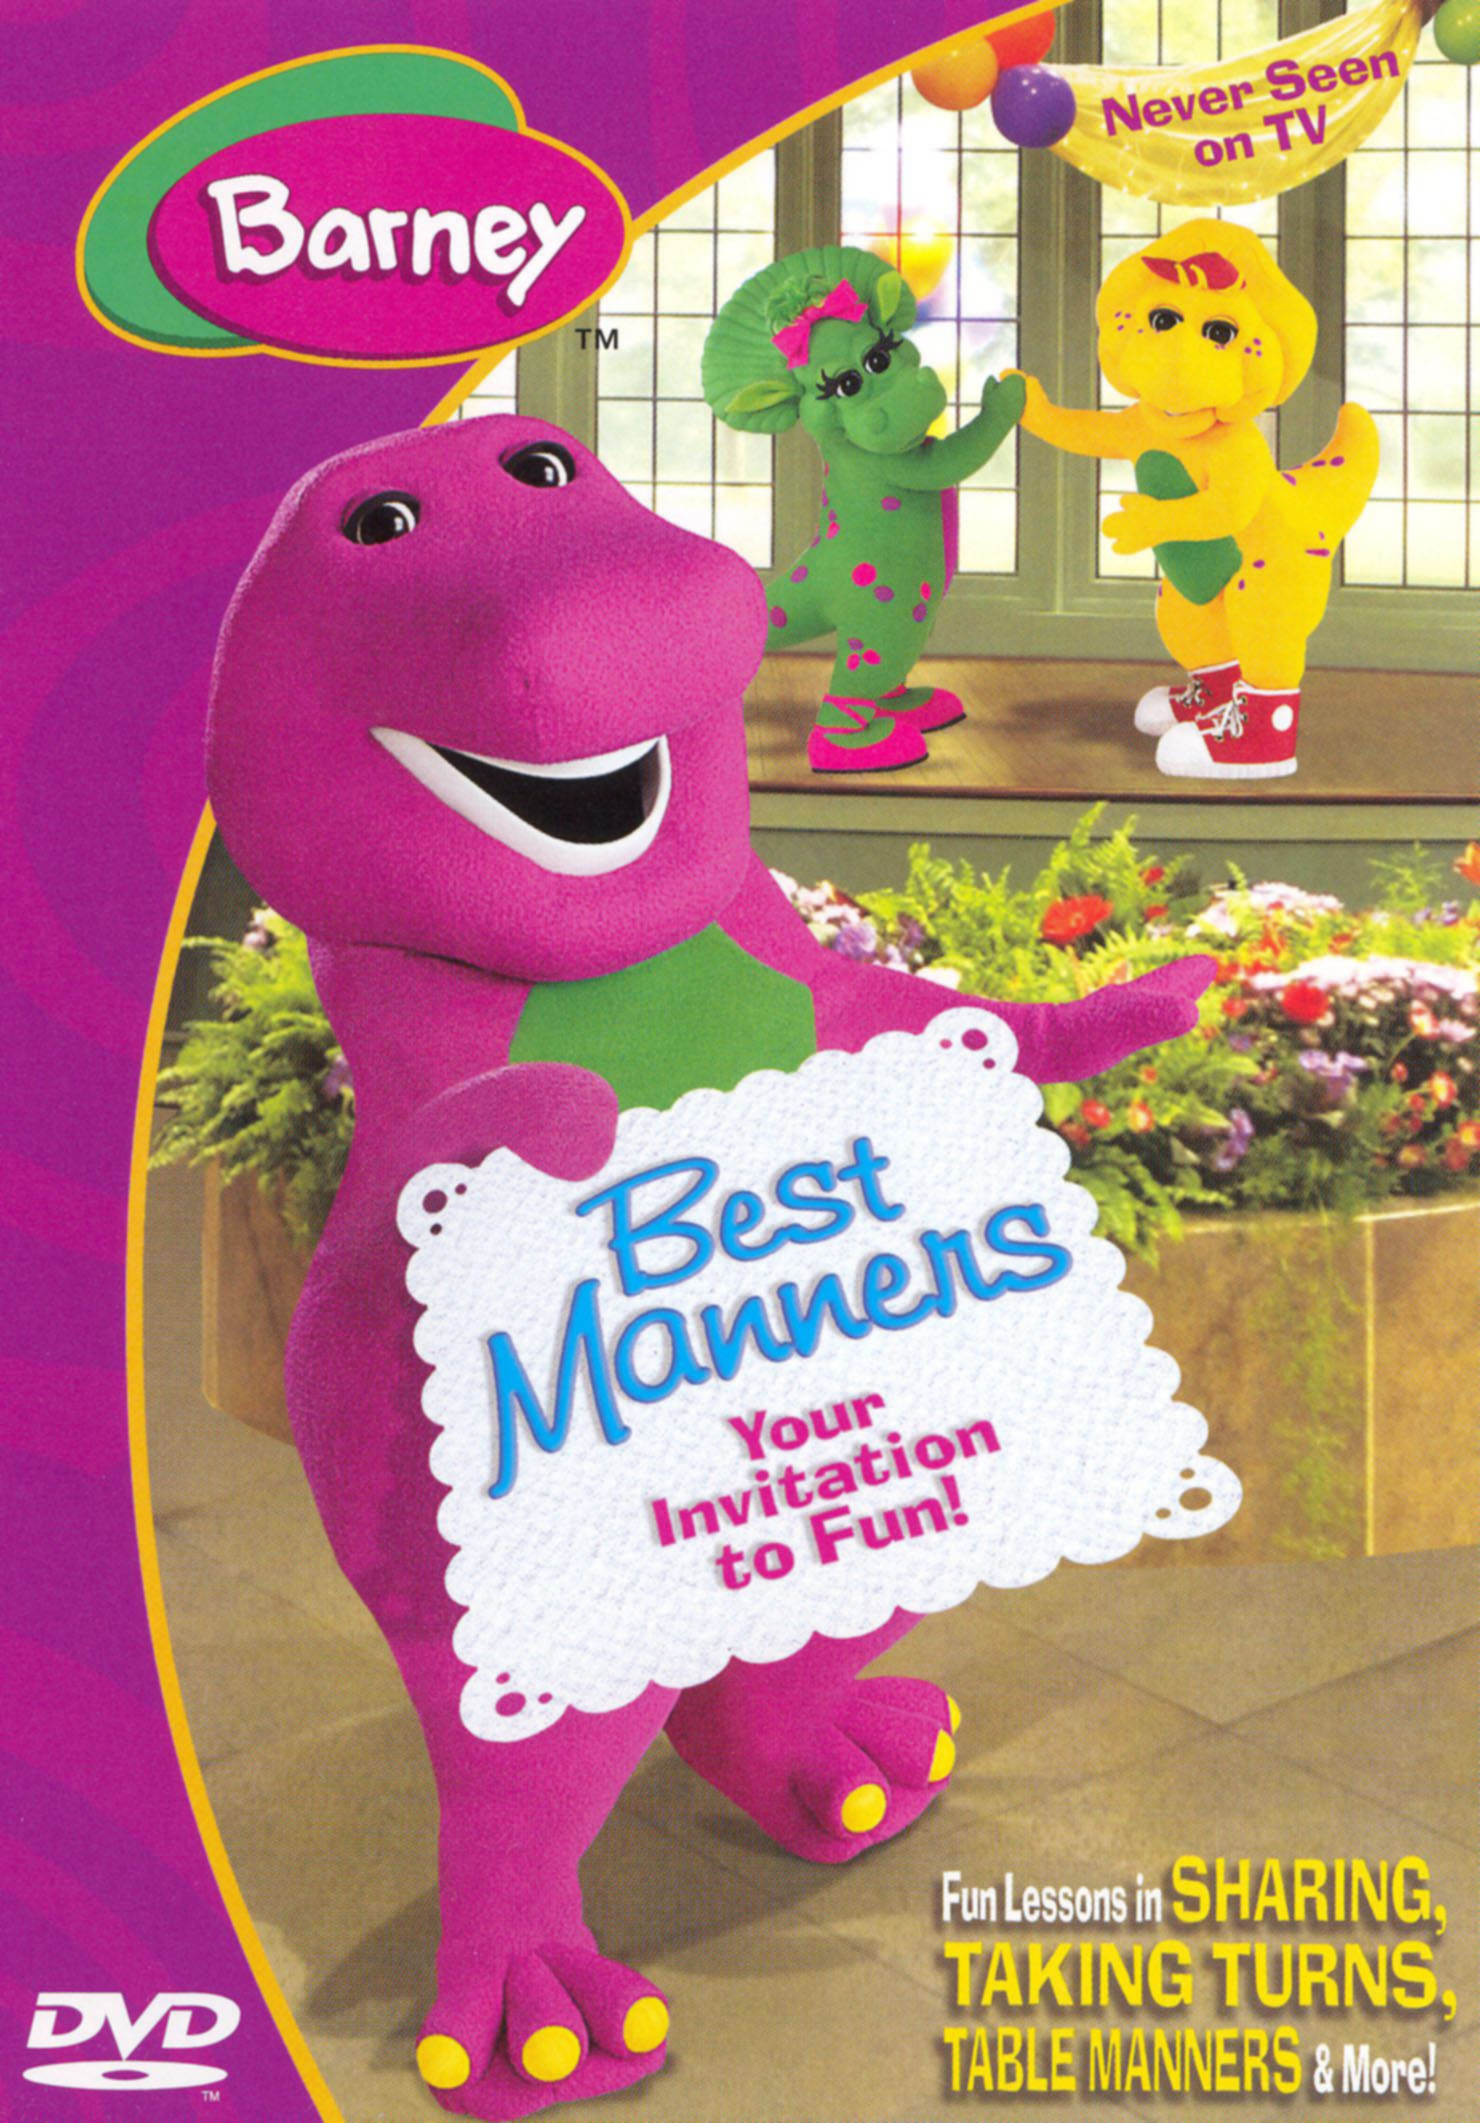 Barney: Best Manners - Invitation to Fun